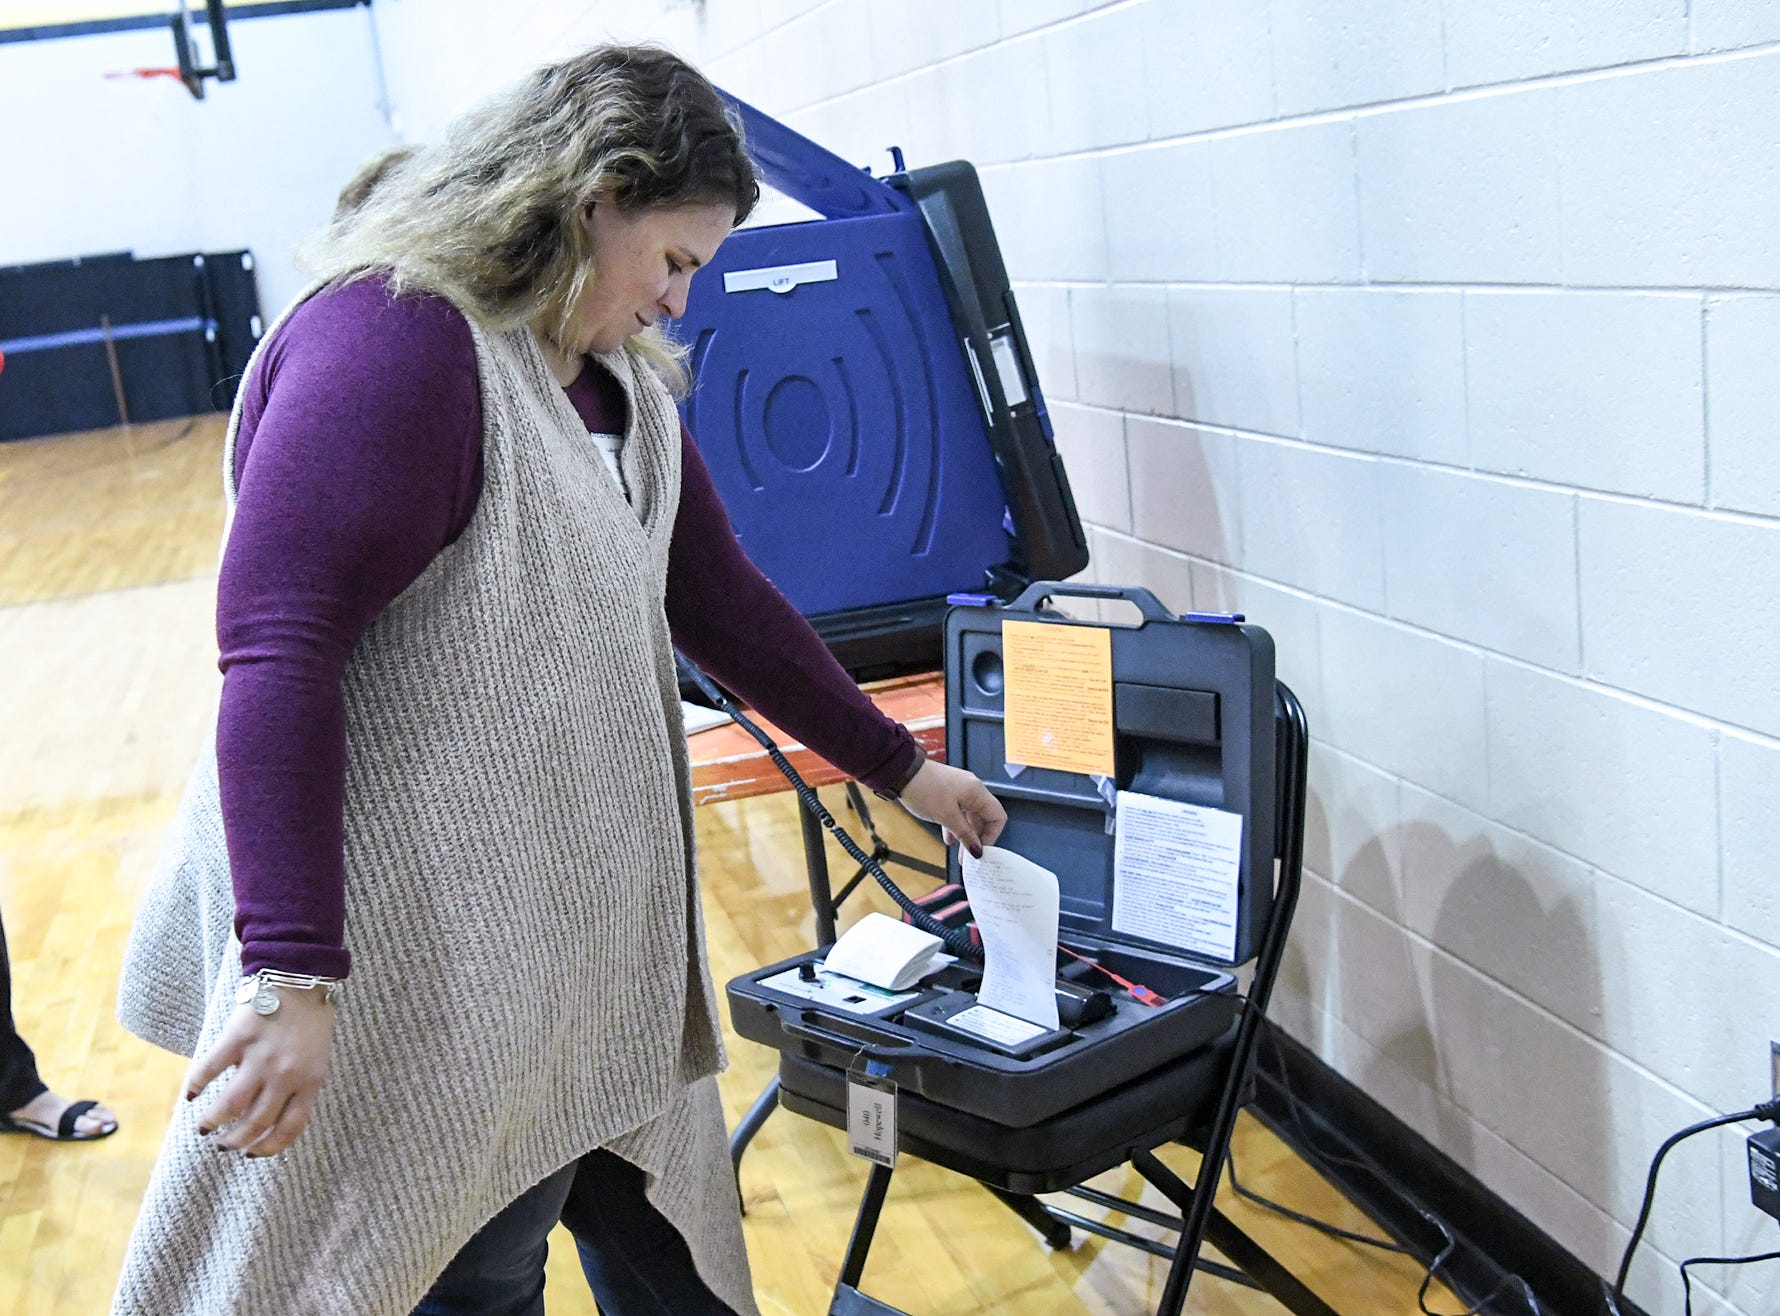 Caitlin Phillips, a poll clerk at Hopewell precinct at T.L. Hanna High School, gets totals printed out after 7 p.m. in Anderson on Tuesday, November 6, 2018.